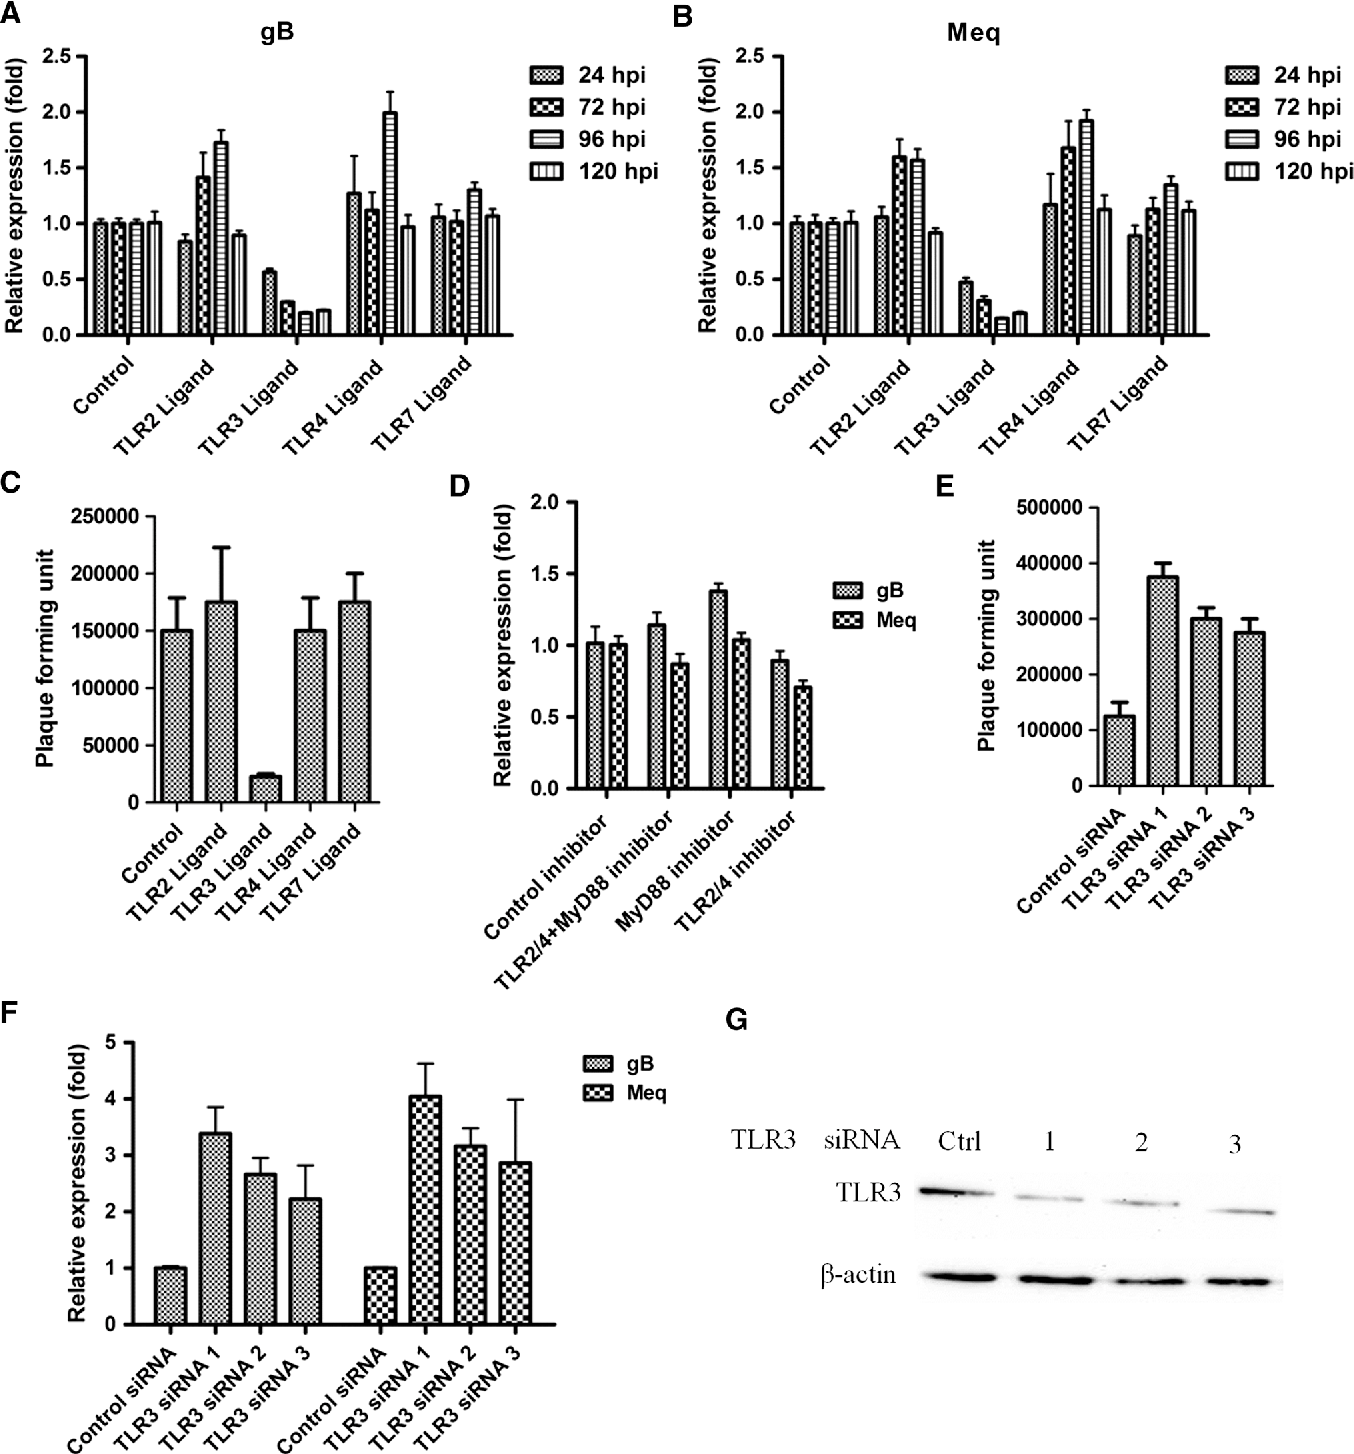 Fig. 2 Influence of TLR3 on MDV infection and replication. A: Expression of gB in CEF cells stimulated with TLR ligands at 24, 72, 96 and 120 hours after infection with strain RB1B. B: Expression of Meq in CEF cells stimulated with TLR ligands at 24, 72, 96 and 120 hours after infection with strain RB1B. C: Plaque-forming units of RB1B in unstimulated CEF cells. D: Plaque-forming units of RB1B in CEF cells stimulated with TLR ligands. E: Plaque-forming